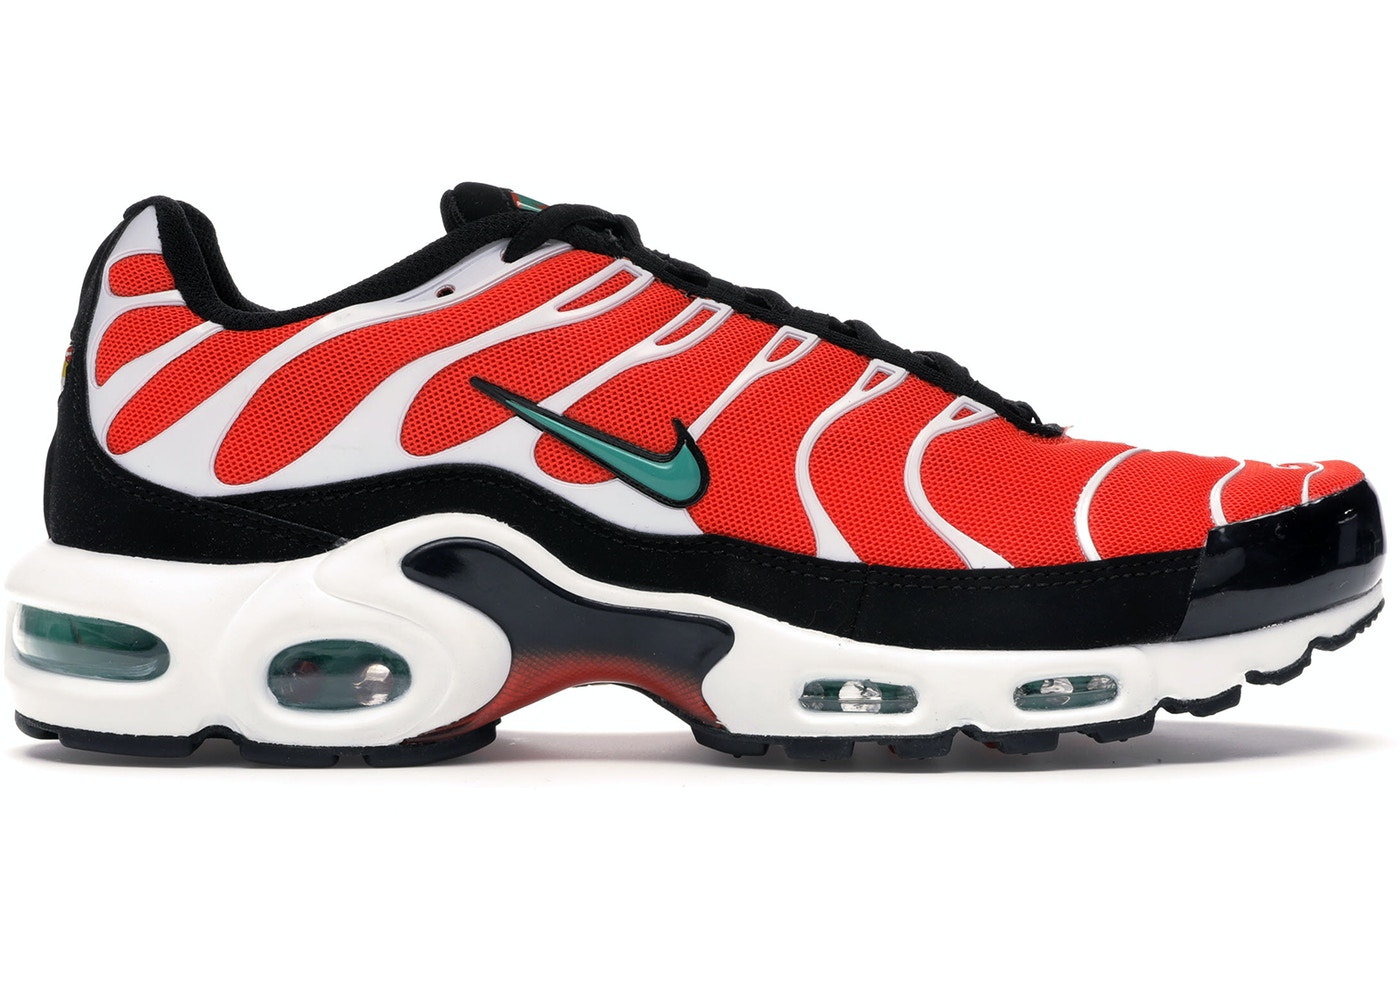 Nike Air Max Plus Team Orange Neptune Green 852630 801